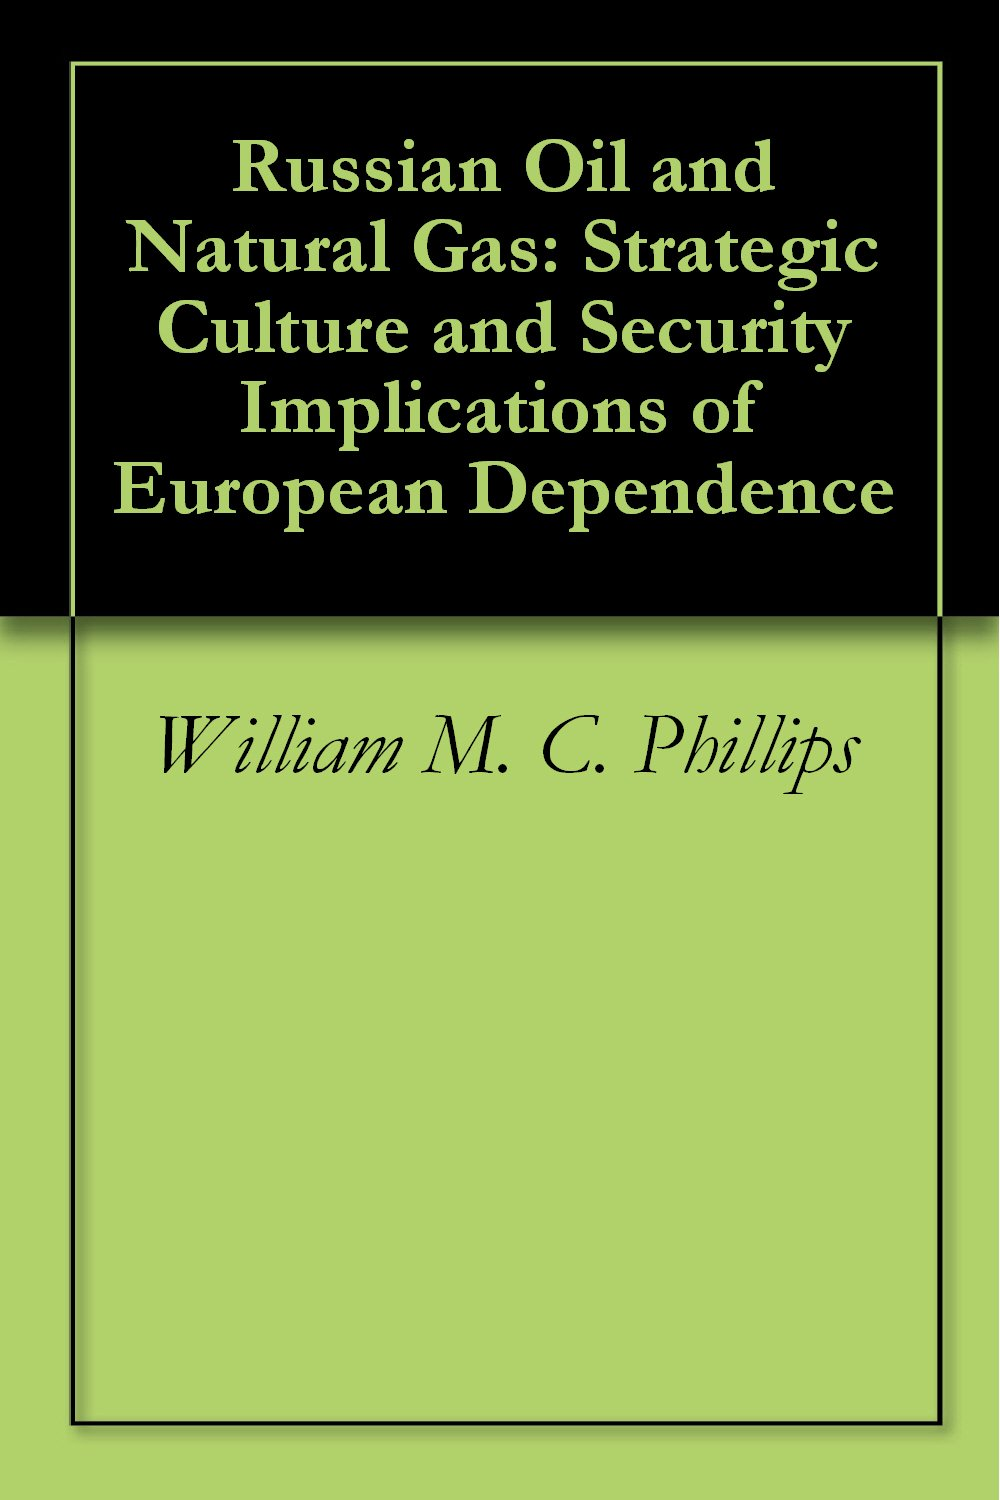 Russian Oil and Natural Gas: Strategic Culture and Security Implications of European Dependence